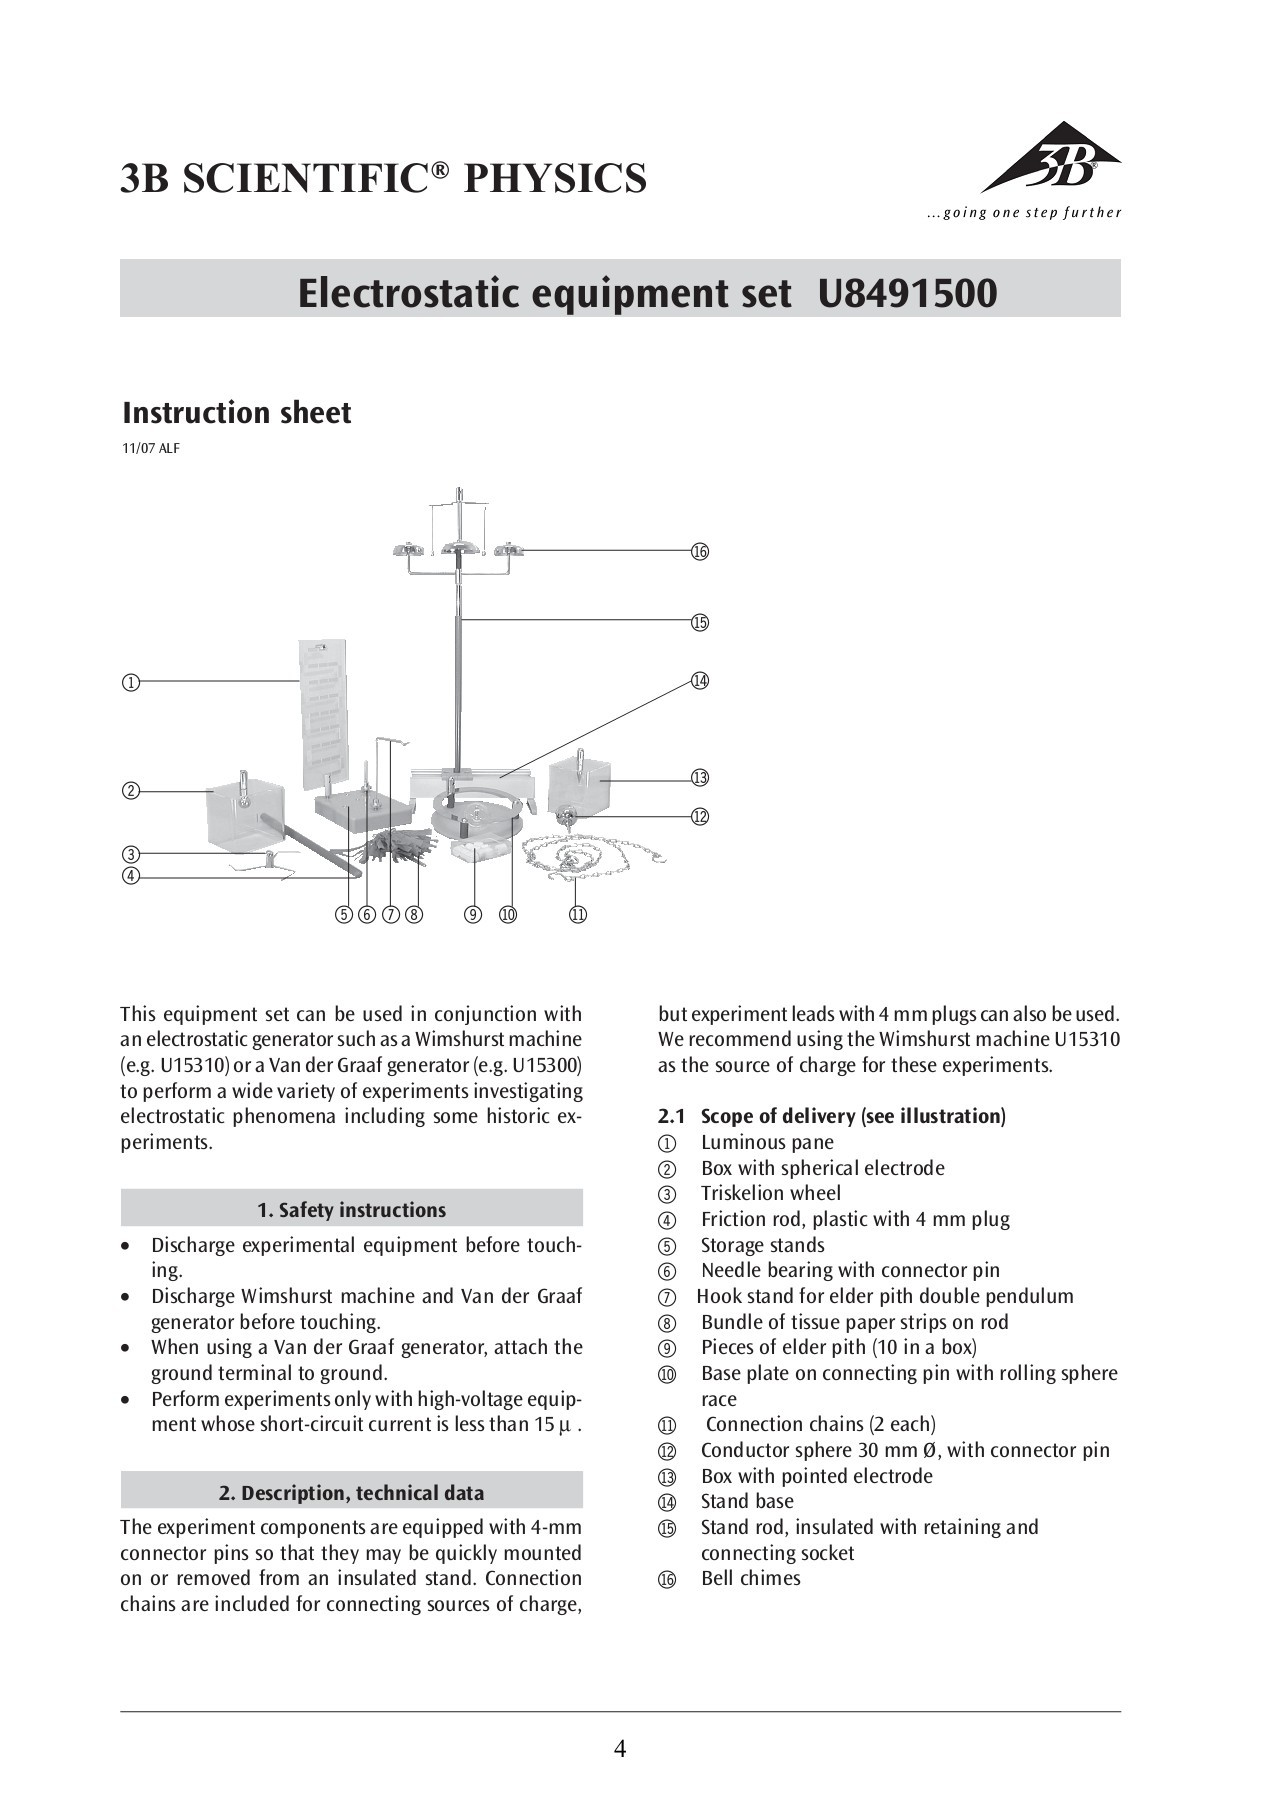 hight resolution of 3b scientific physics electrostatic equipment set u8491500 pages 1 4 text version fliphtml5